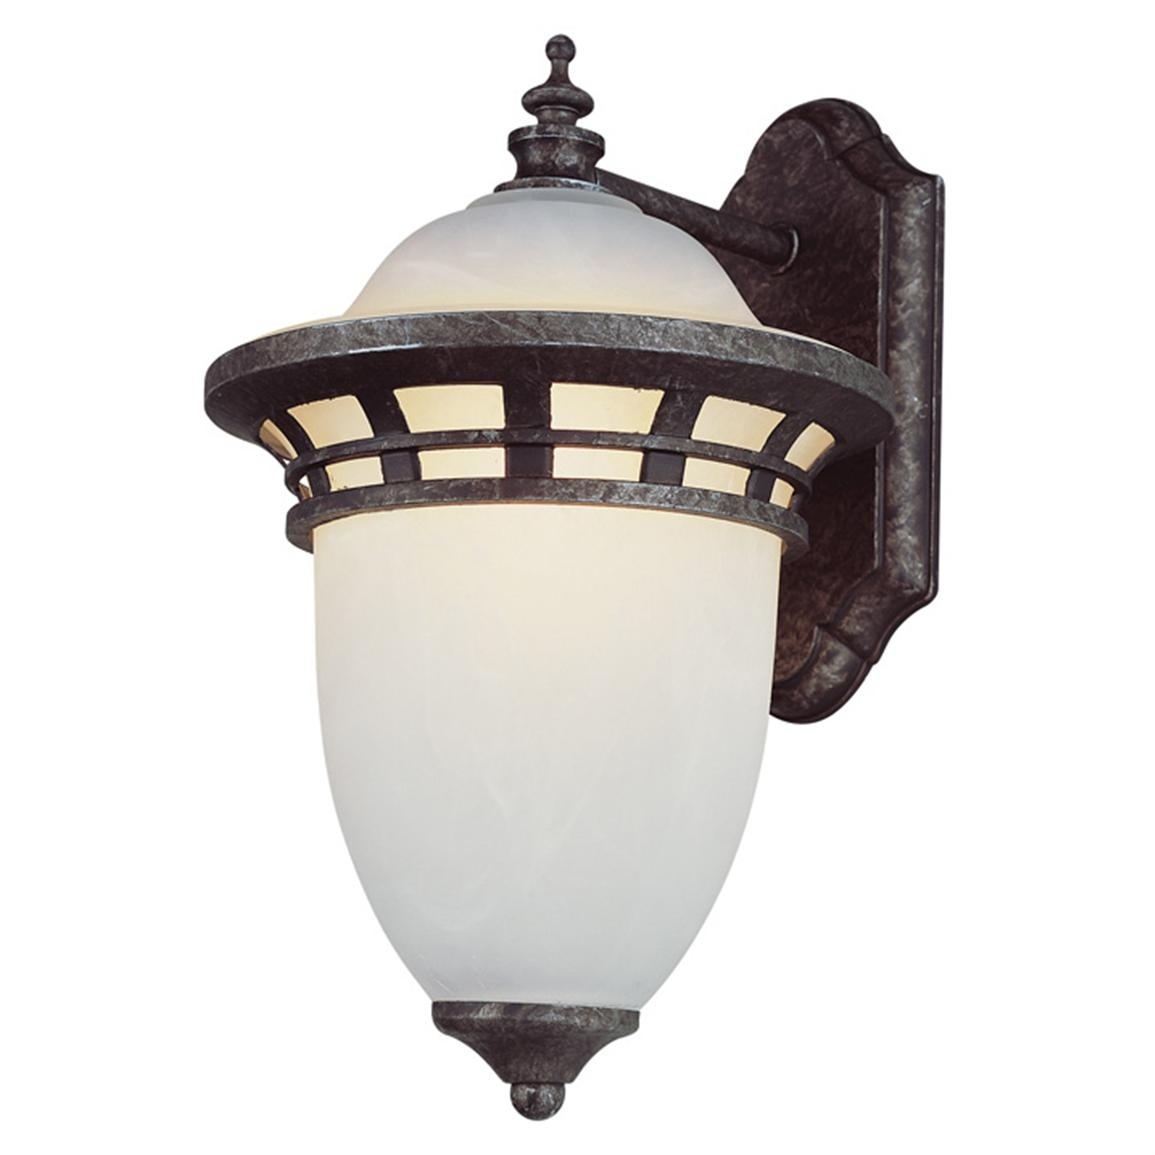 Inspiration about Trans Globe Lighting 1 – Light Outdoor Antique Wall Lantern – 173599 With Outdoor Wall Lantern By Transglobe Lighting (#12 of 15)